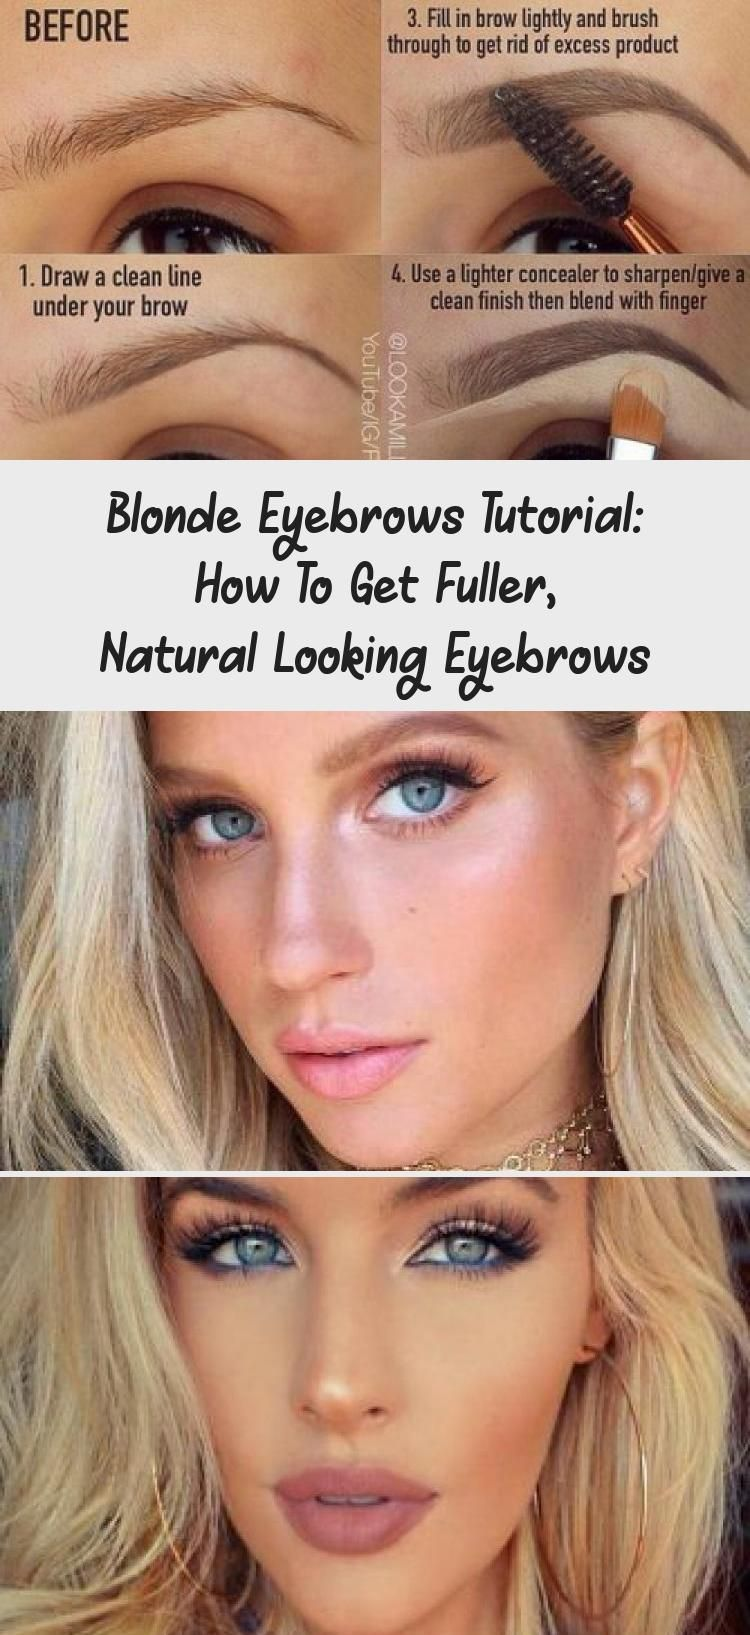 Blonde Eyebrows May Be Not So Easy To Deal With But There Is Nothing Impossible In This Life Besides We Are In 2020 Blonde Eyebrows Light Concealer Eyebrow Tutorial